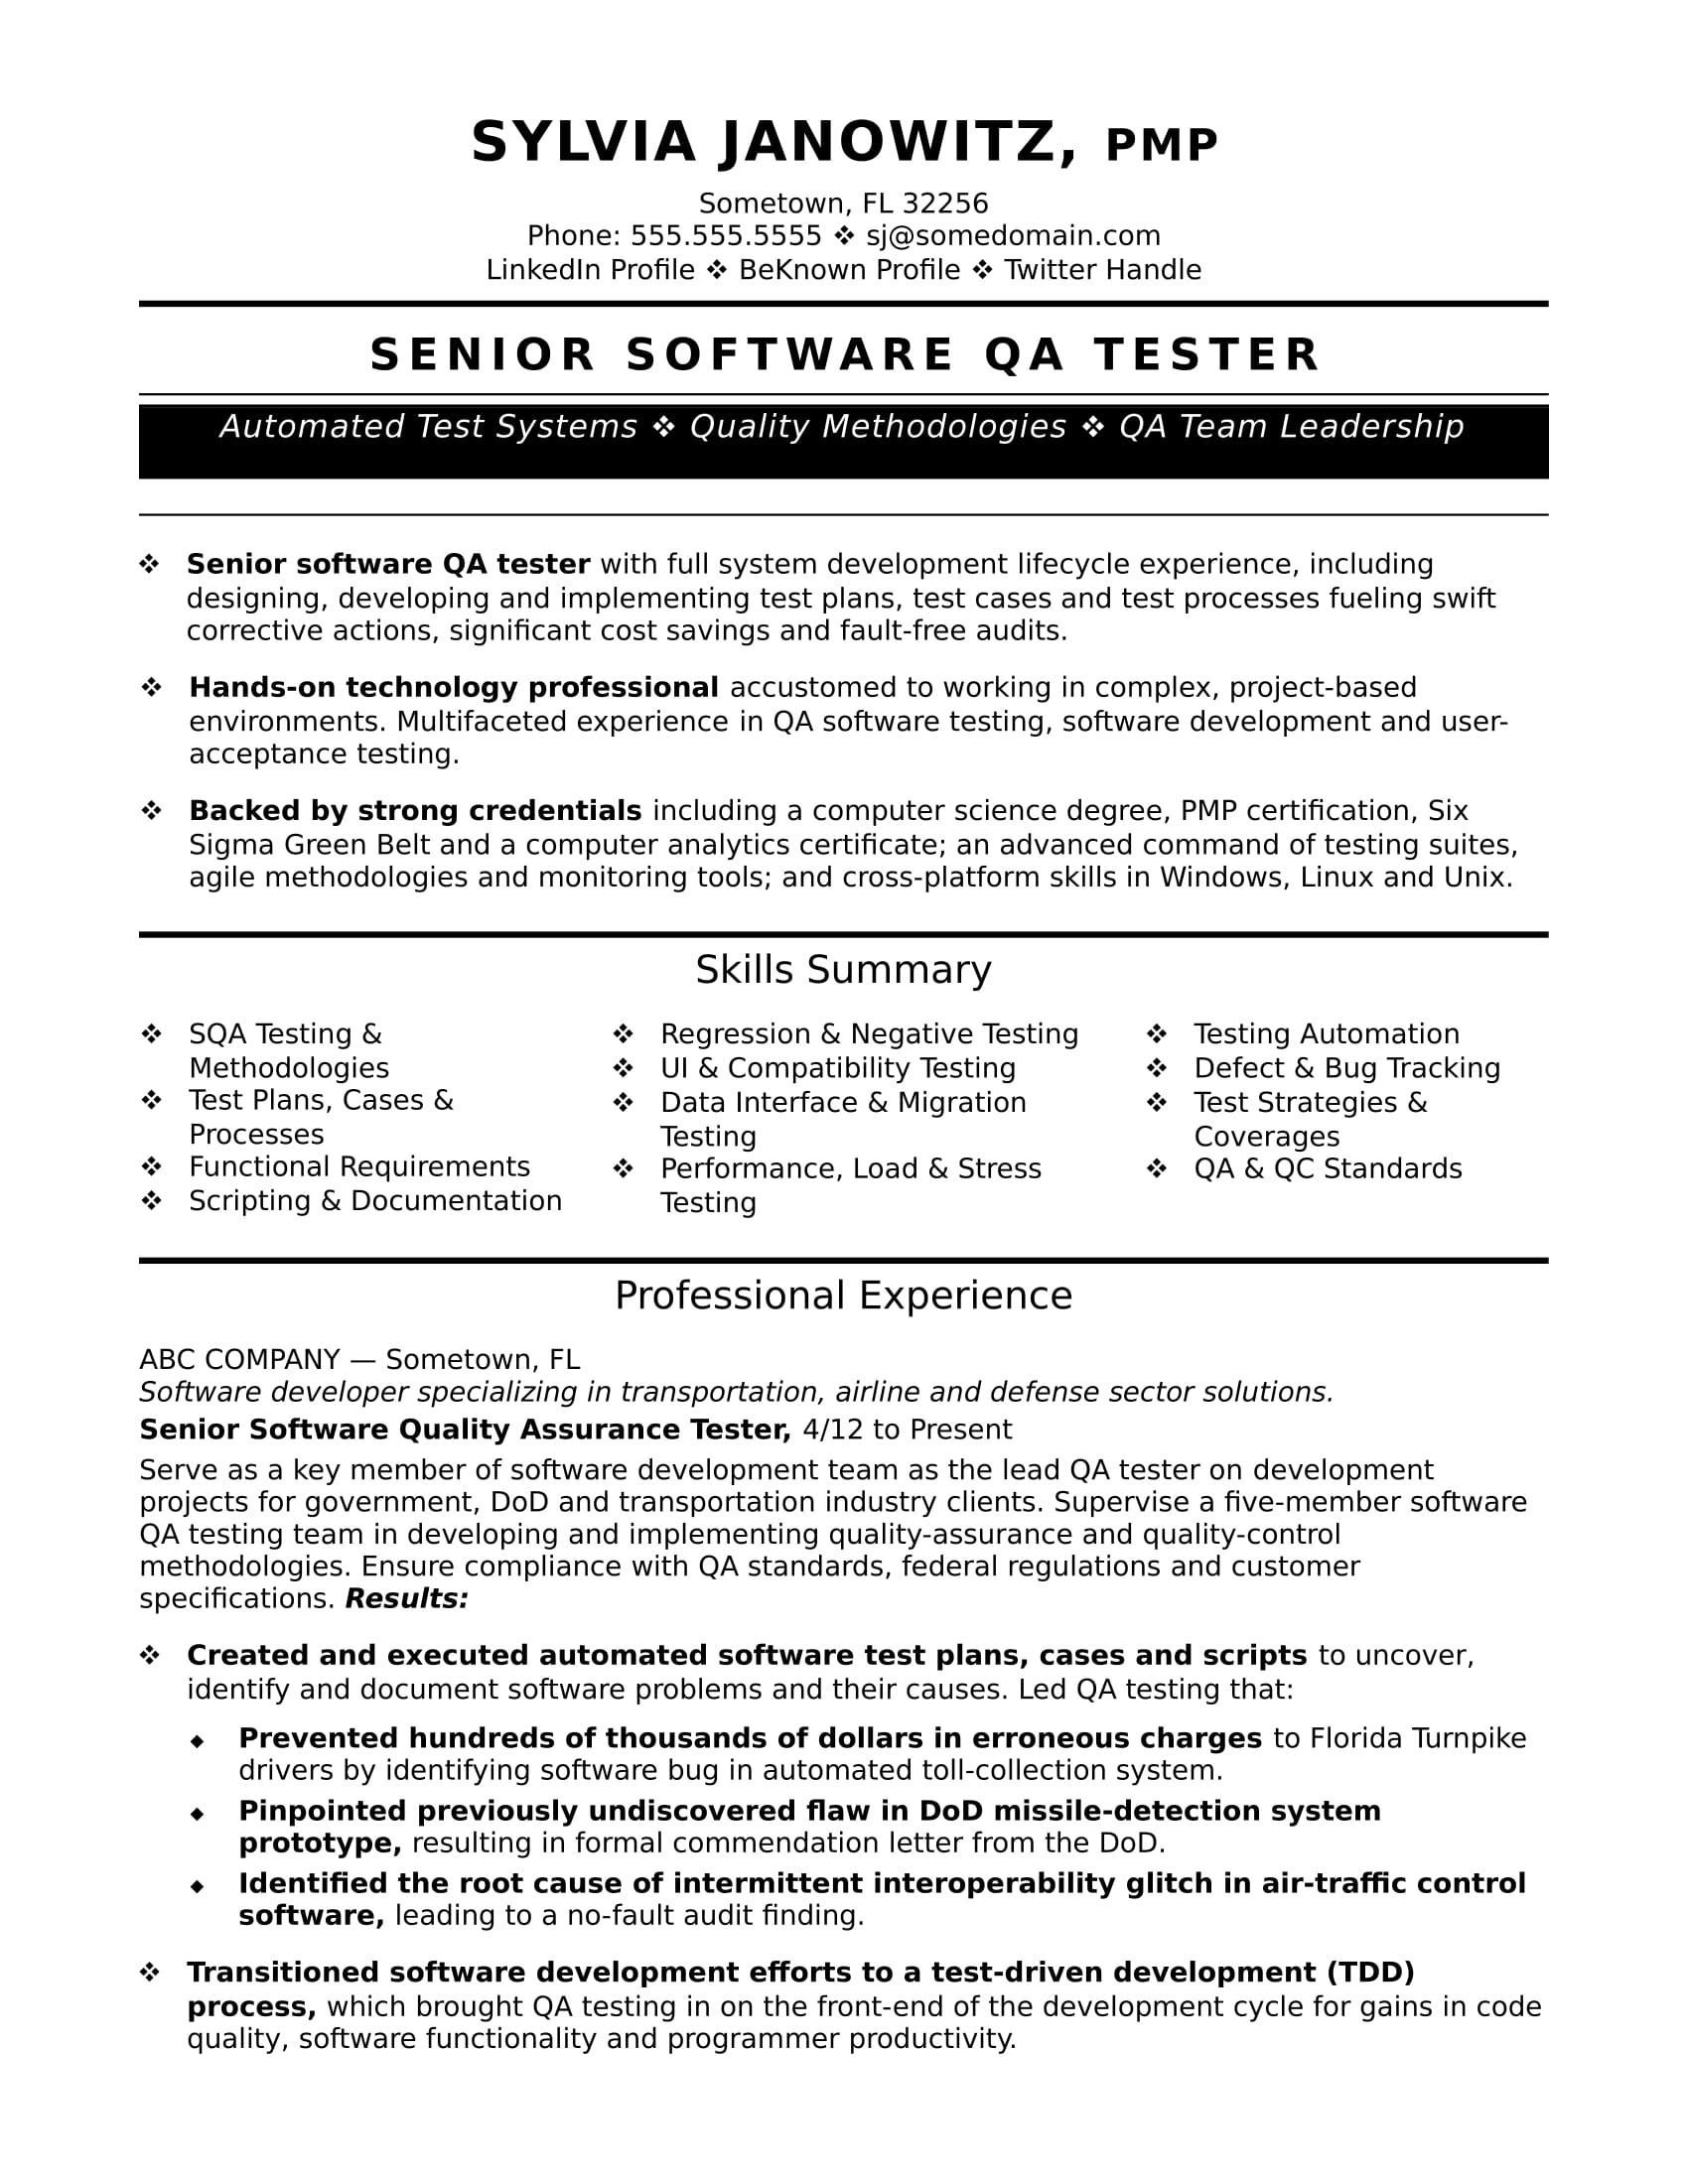 Software Qa Resume Experienced Qa Software Tester Resume Sample  Resume Templates .